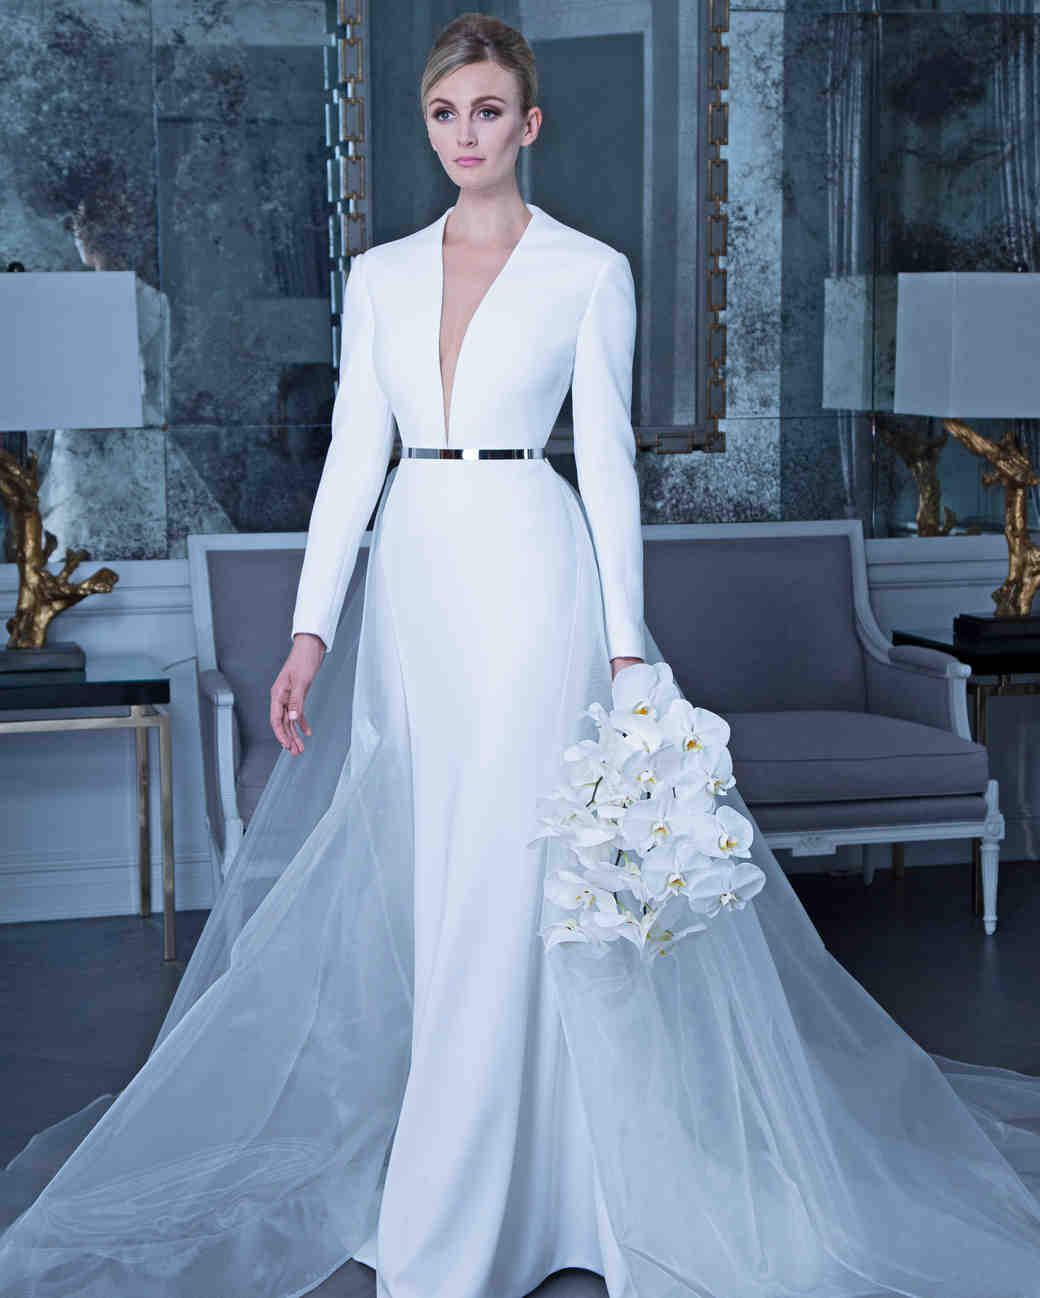 Fashion style Sleeve Long wedding dress pictures for girls